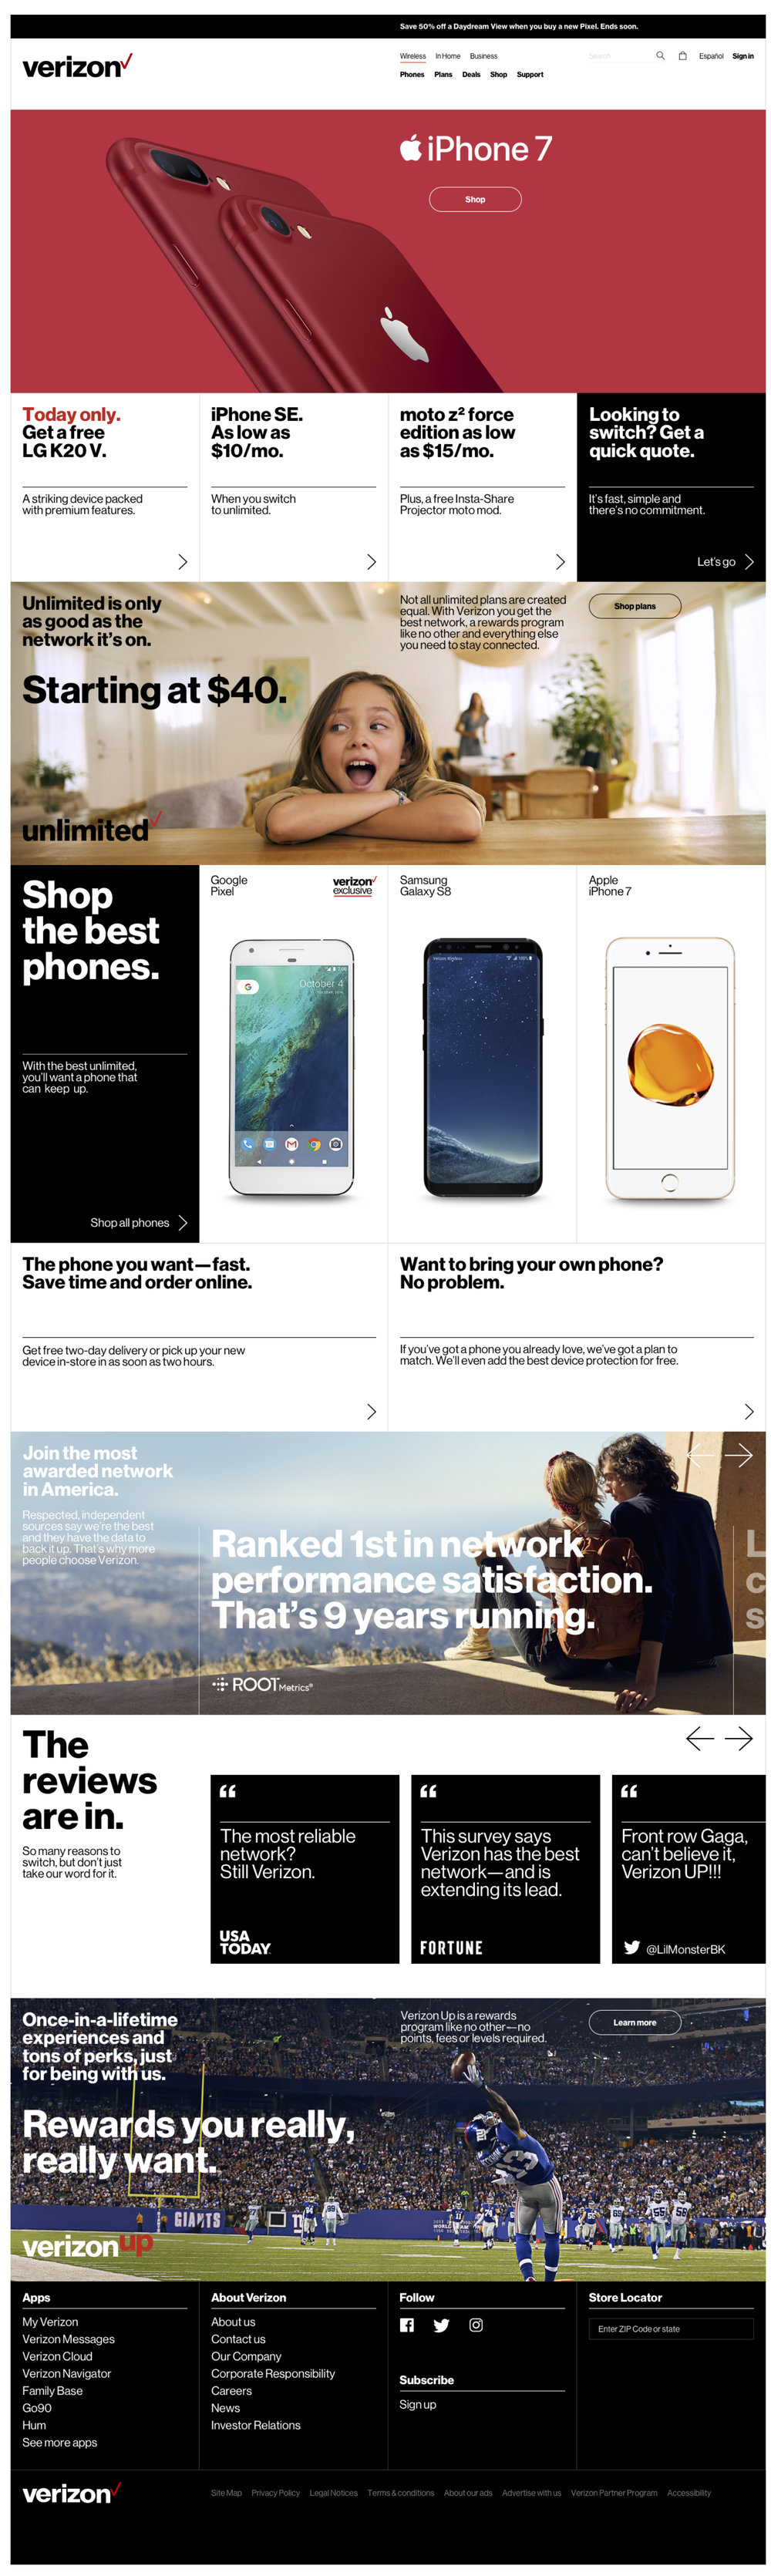 vzw-homepage-launch.jpg